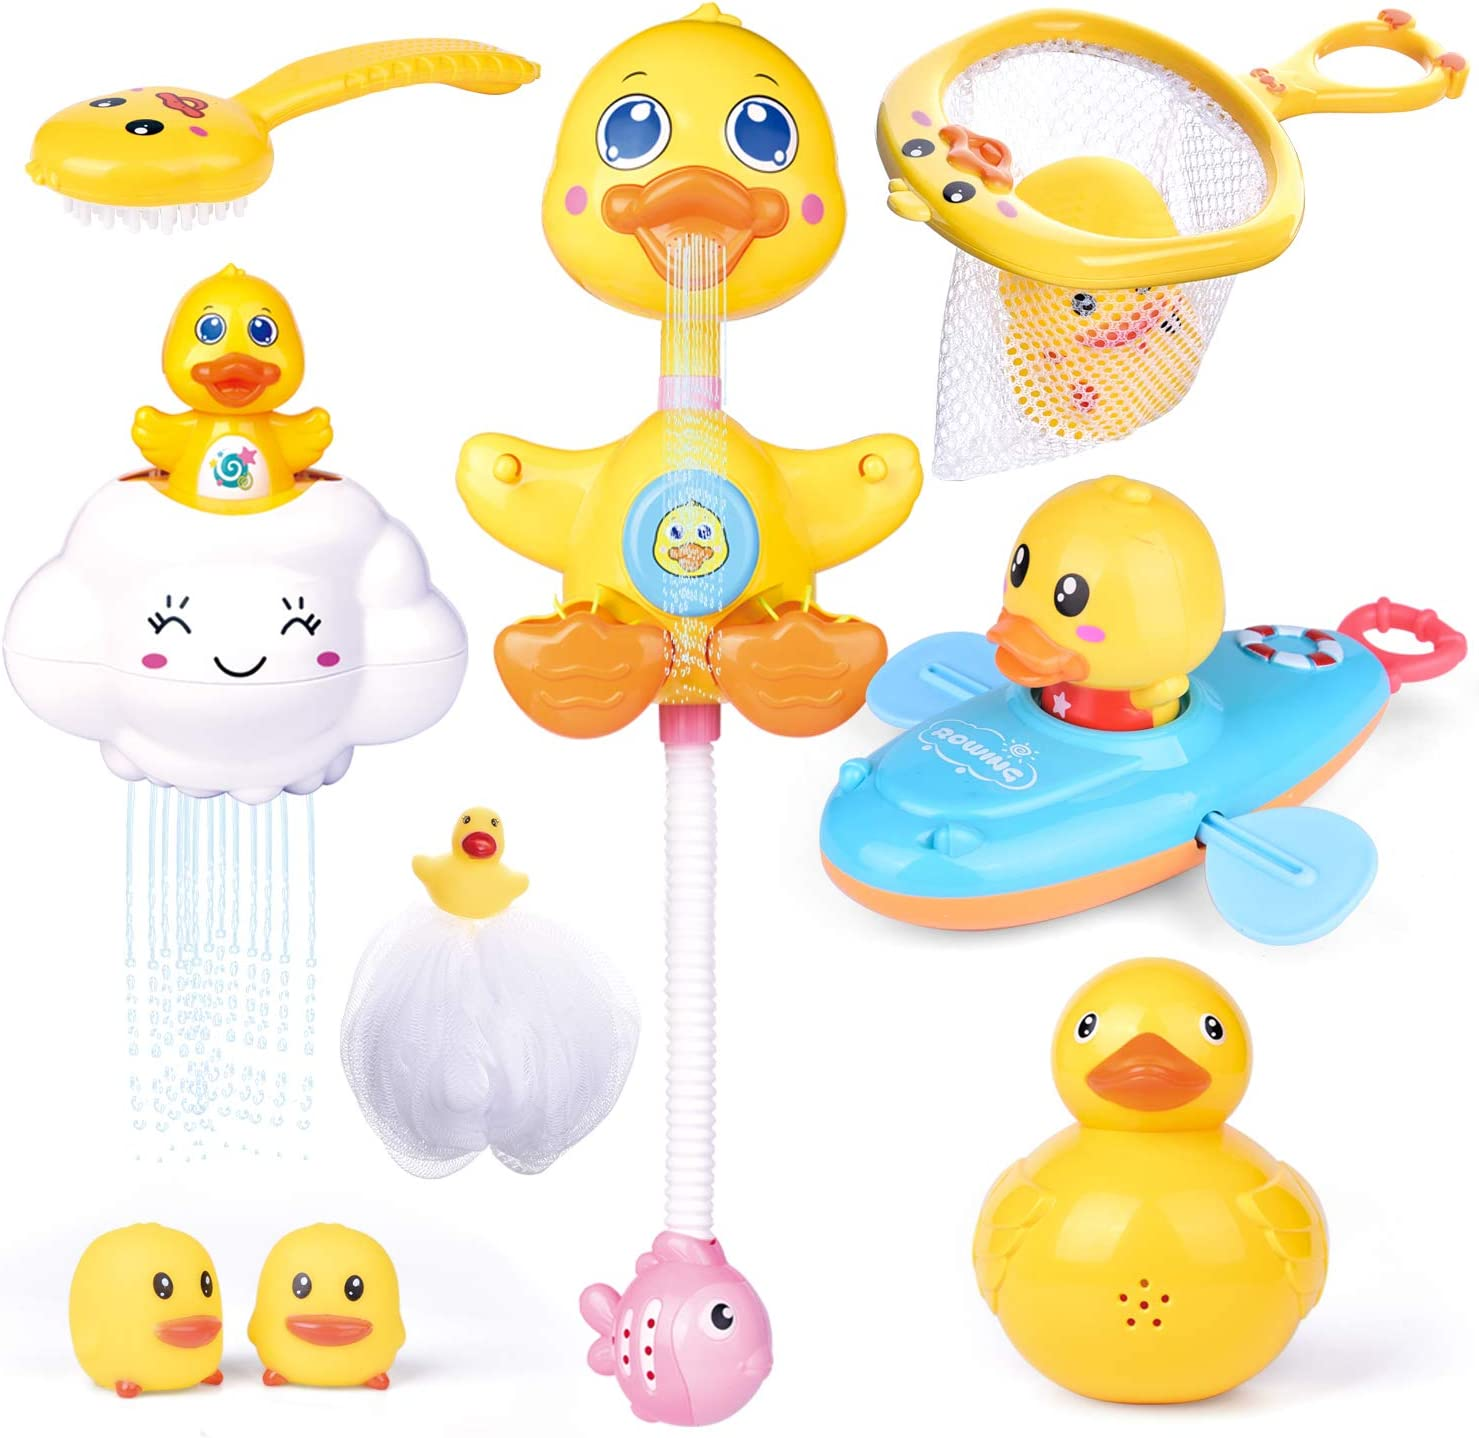 Calornest Baby Bath Toys Induction Sprinkler Shower Toys for Toddlers Infants Kids Boys Girls 2 pcs Duck Automatic Rotating Spray Water Bathtub Toys